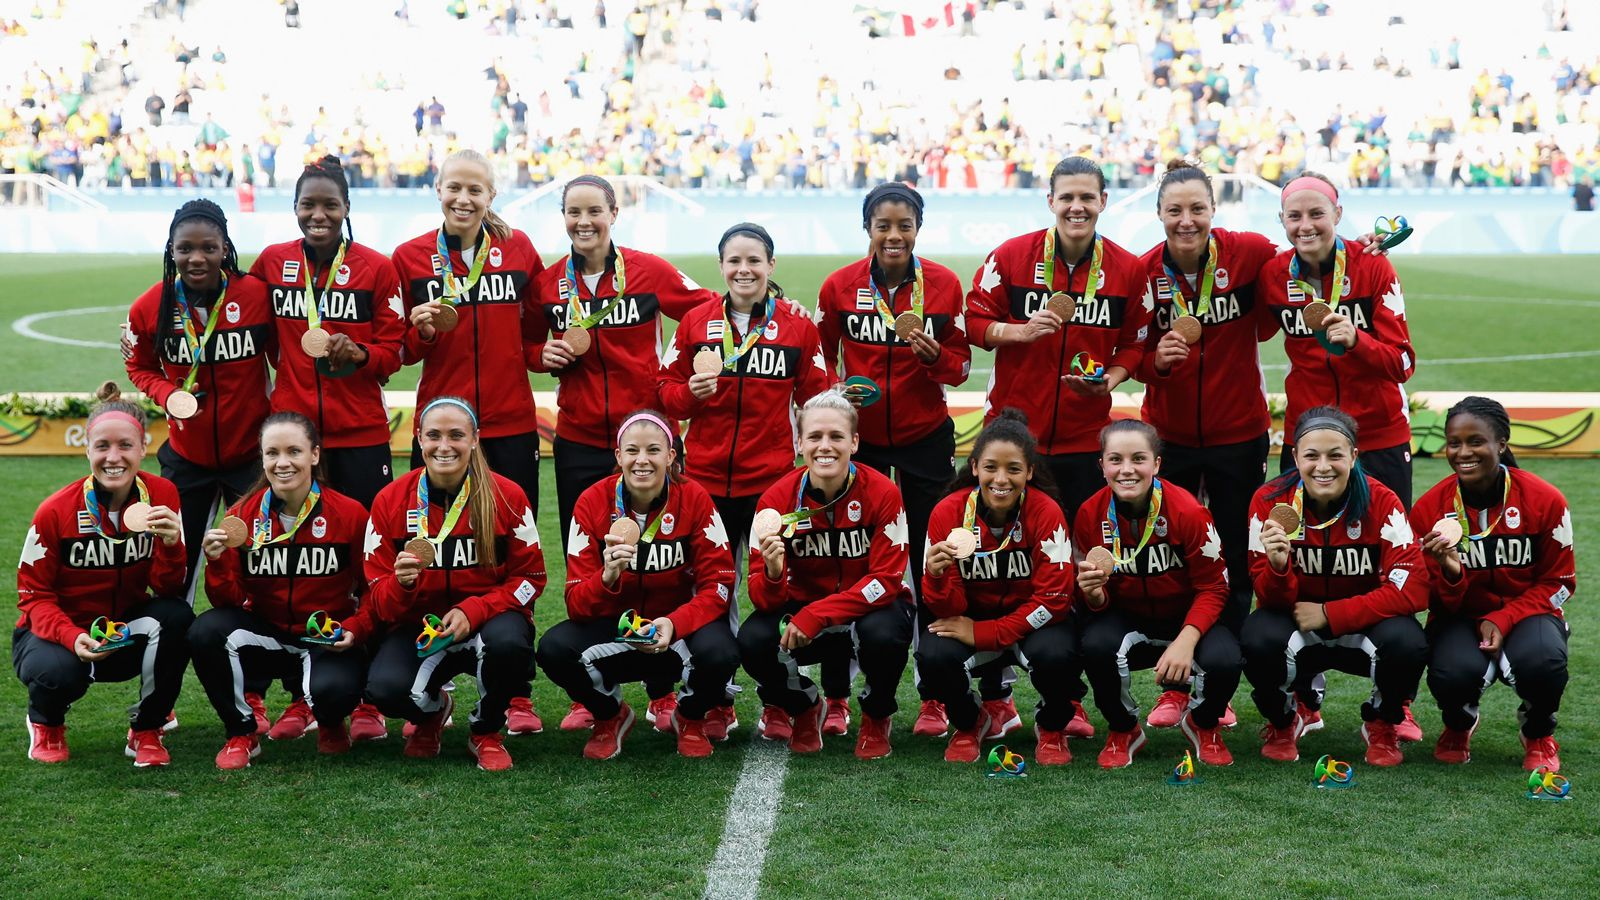 Three former SEC soccer players win bronze for Canada